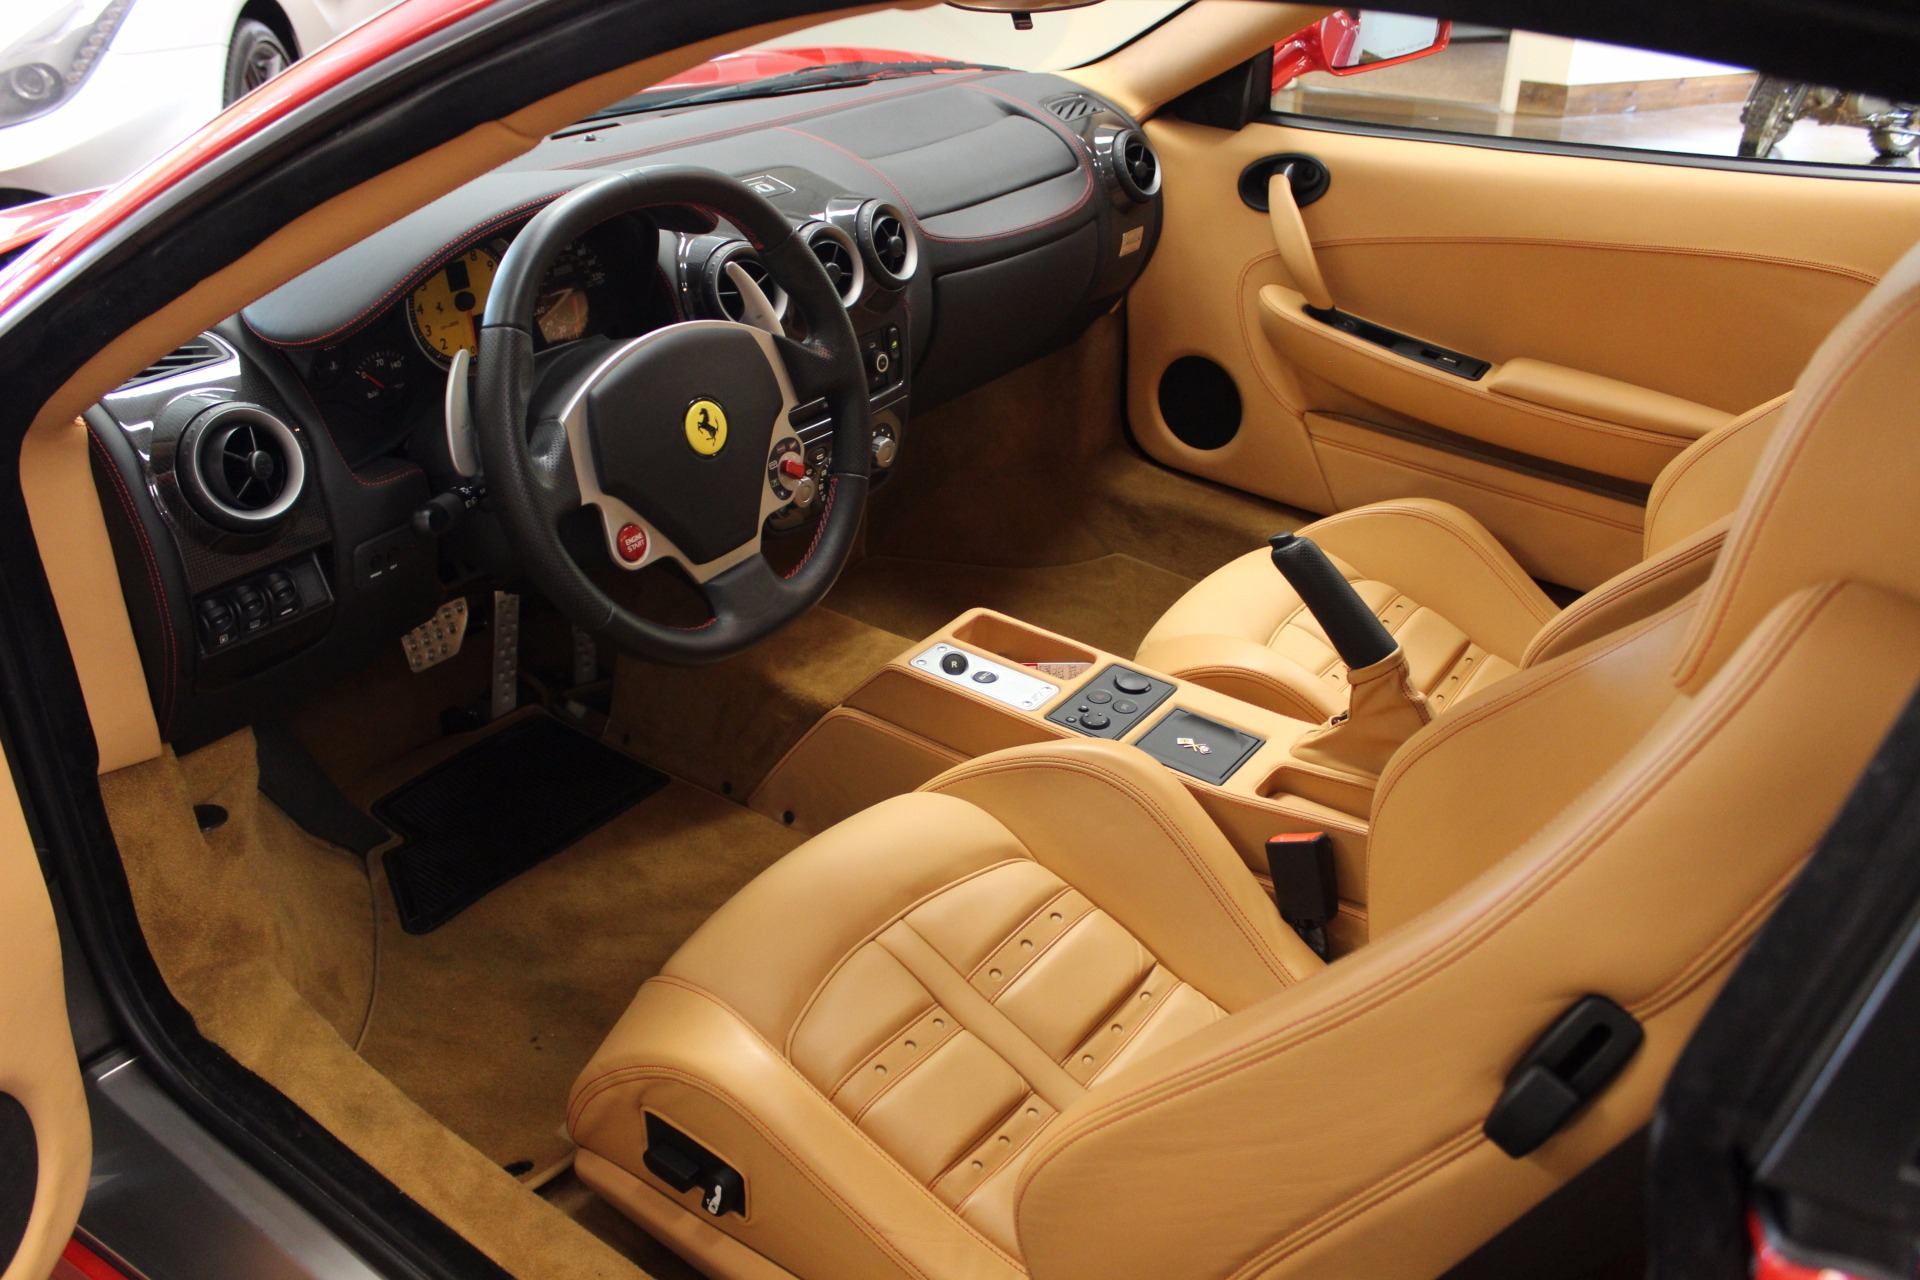 Cost of Ownership for a Used Ferrari